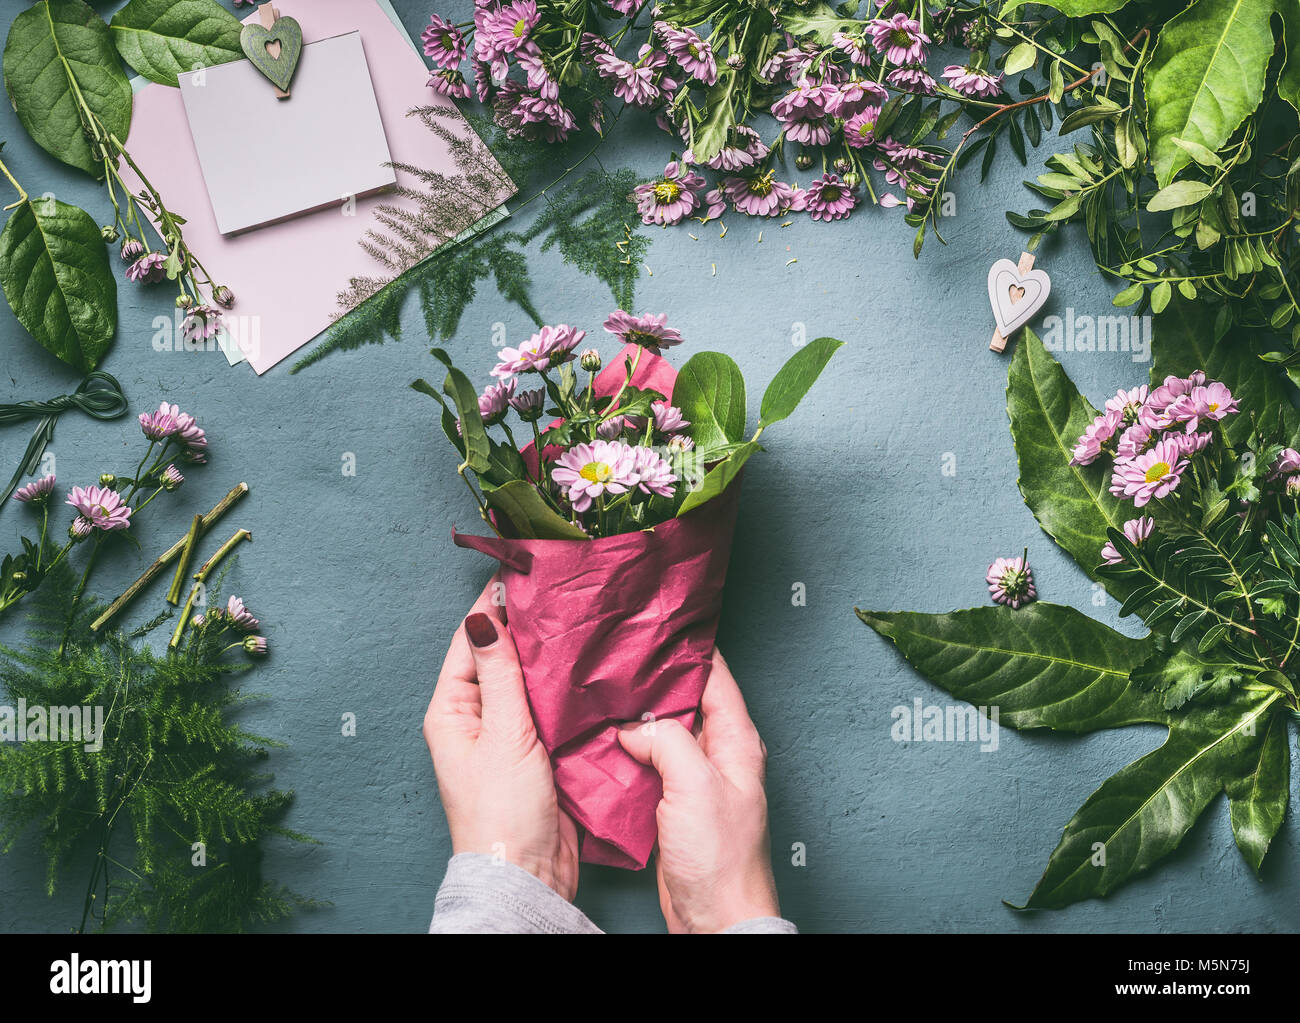 Female Florist Wrapping Flower Bouquet Stock Photos Female Florist